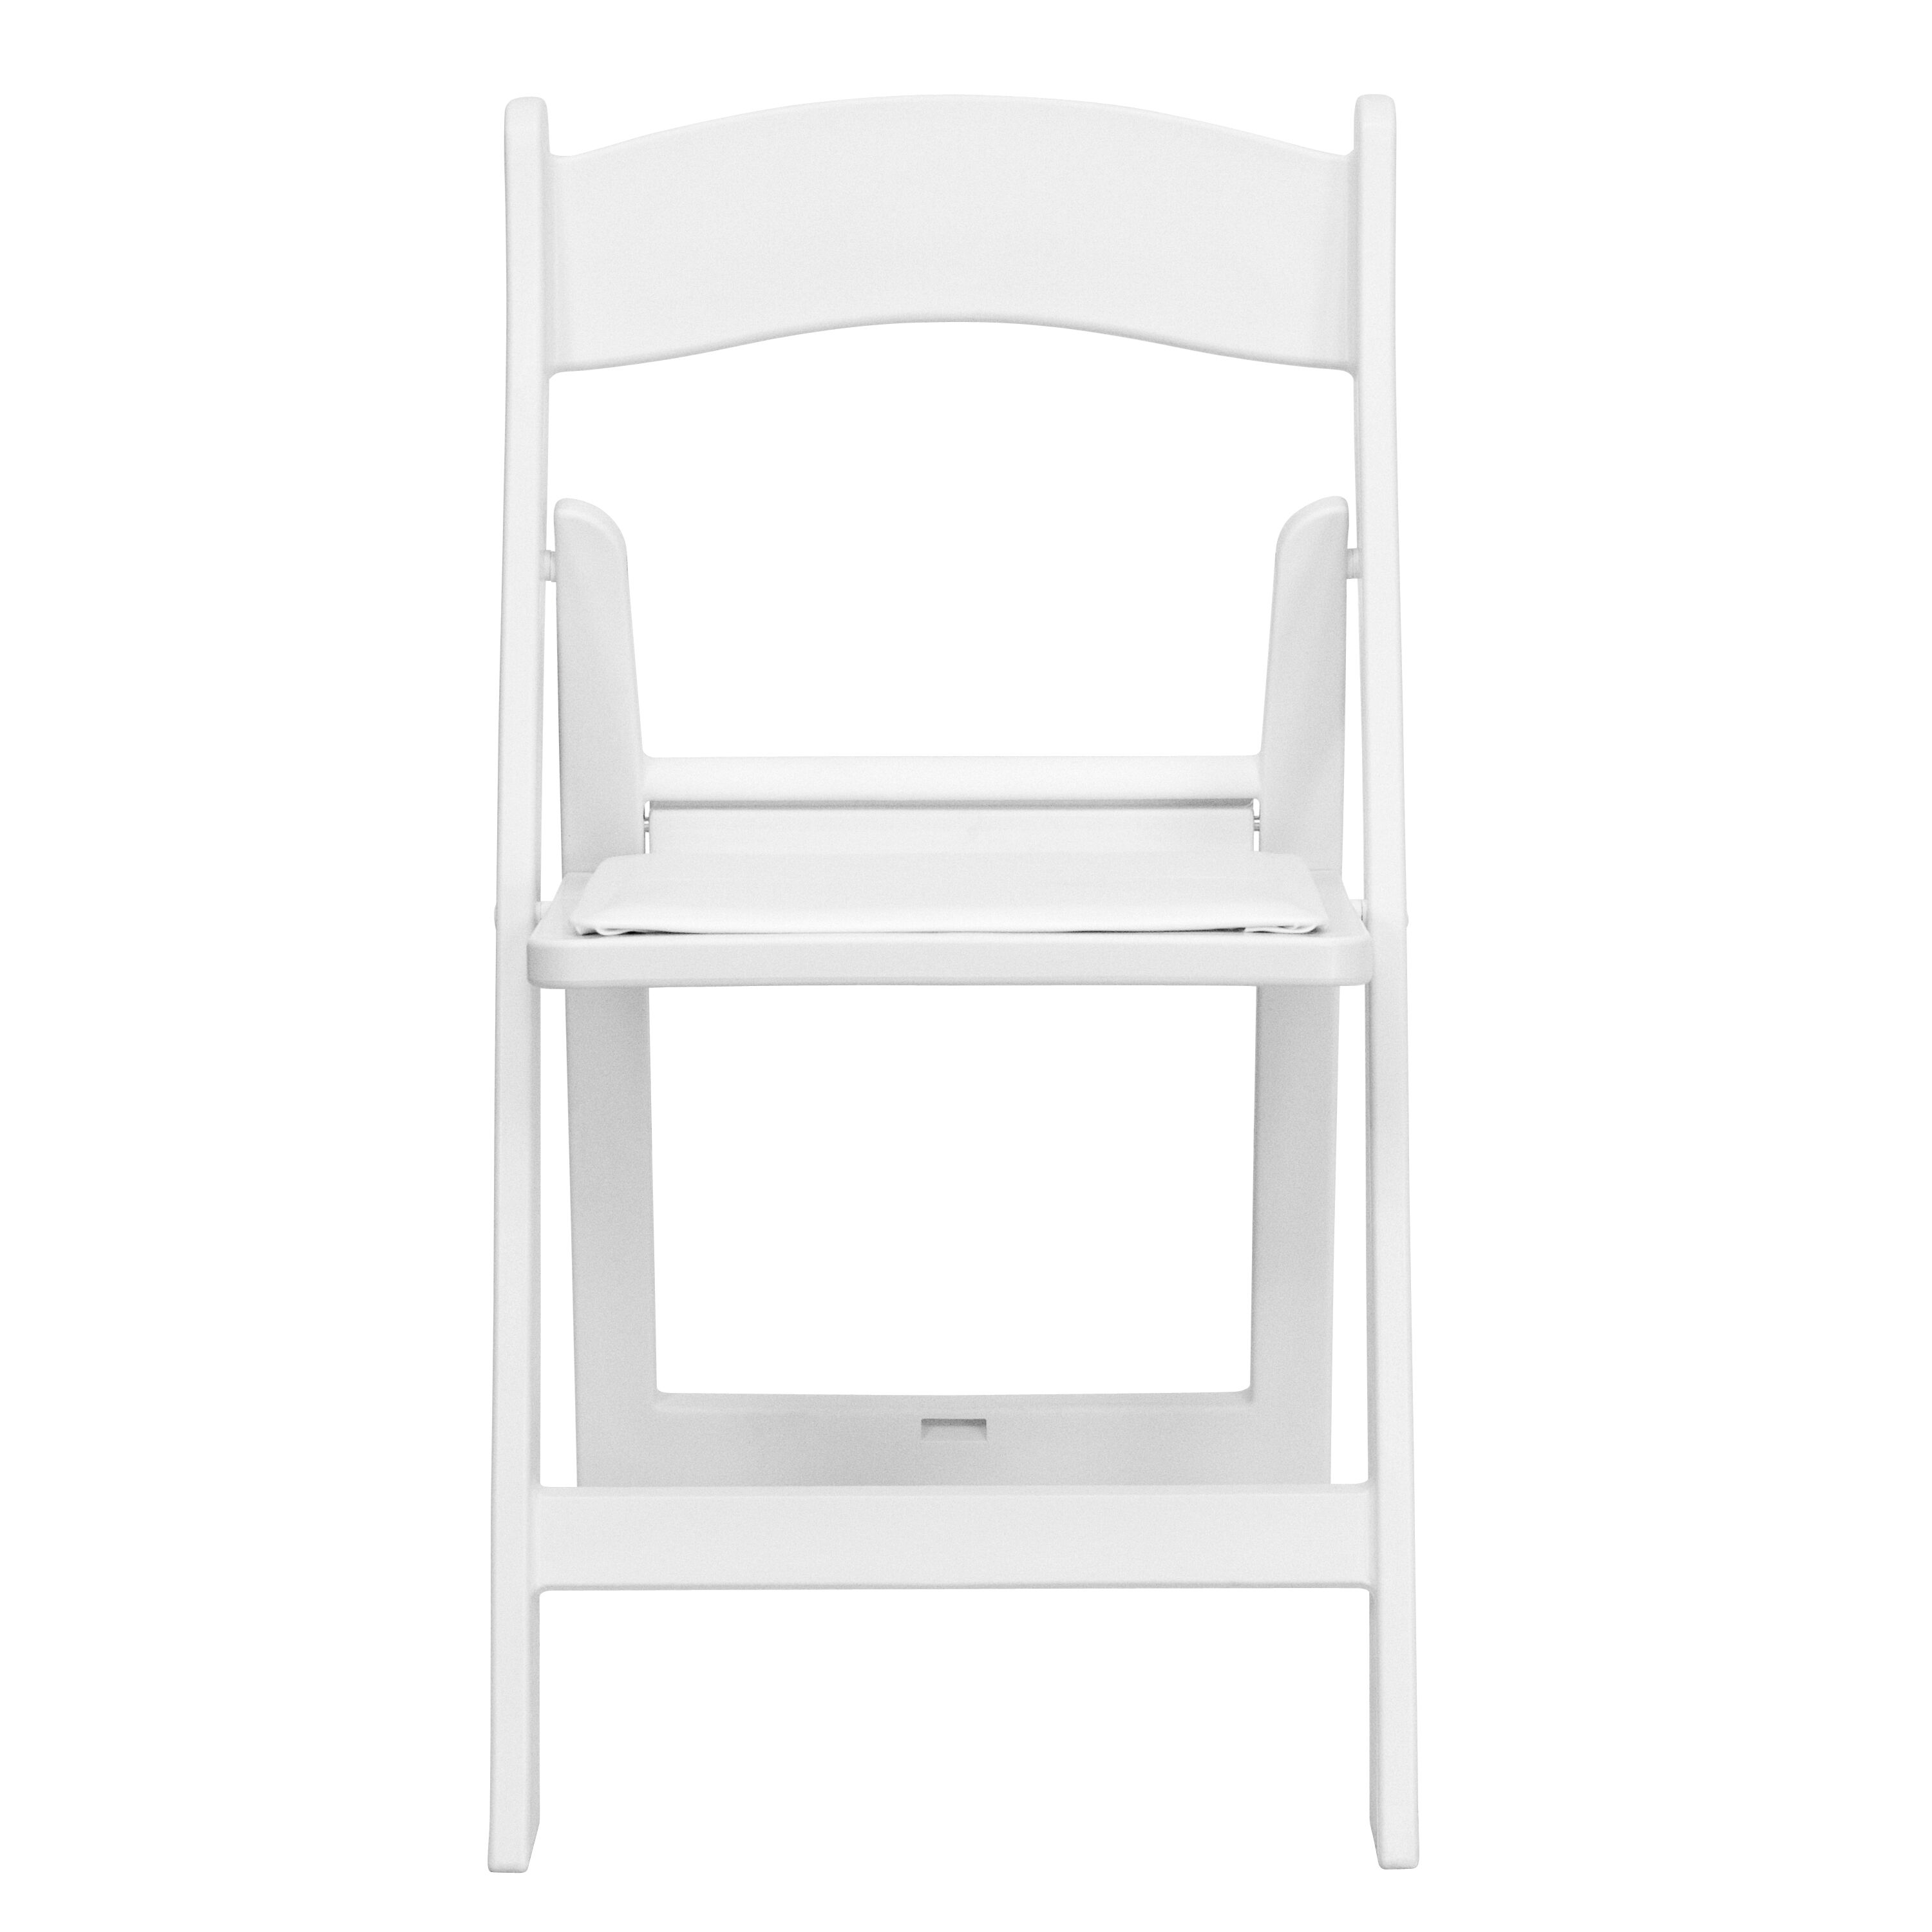 folding chair dolly 50 capacity hanging from tree white resin le l 1 gg bizchair